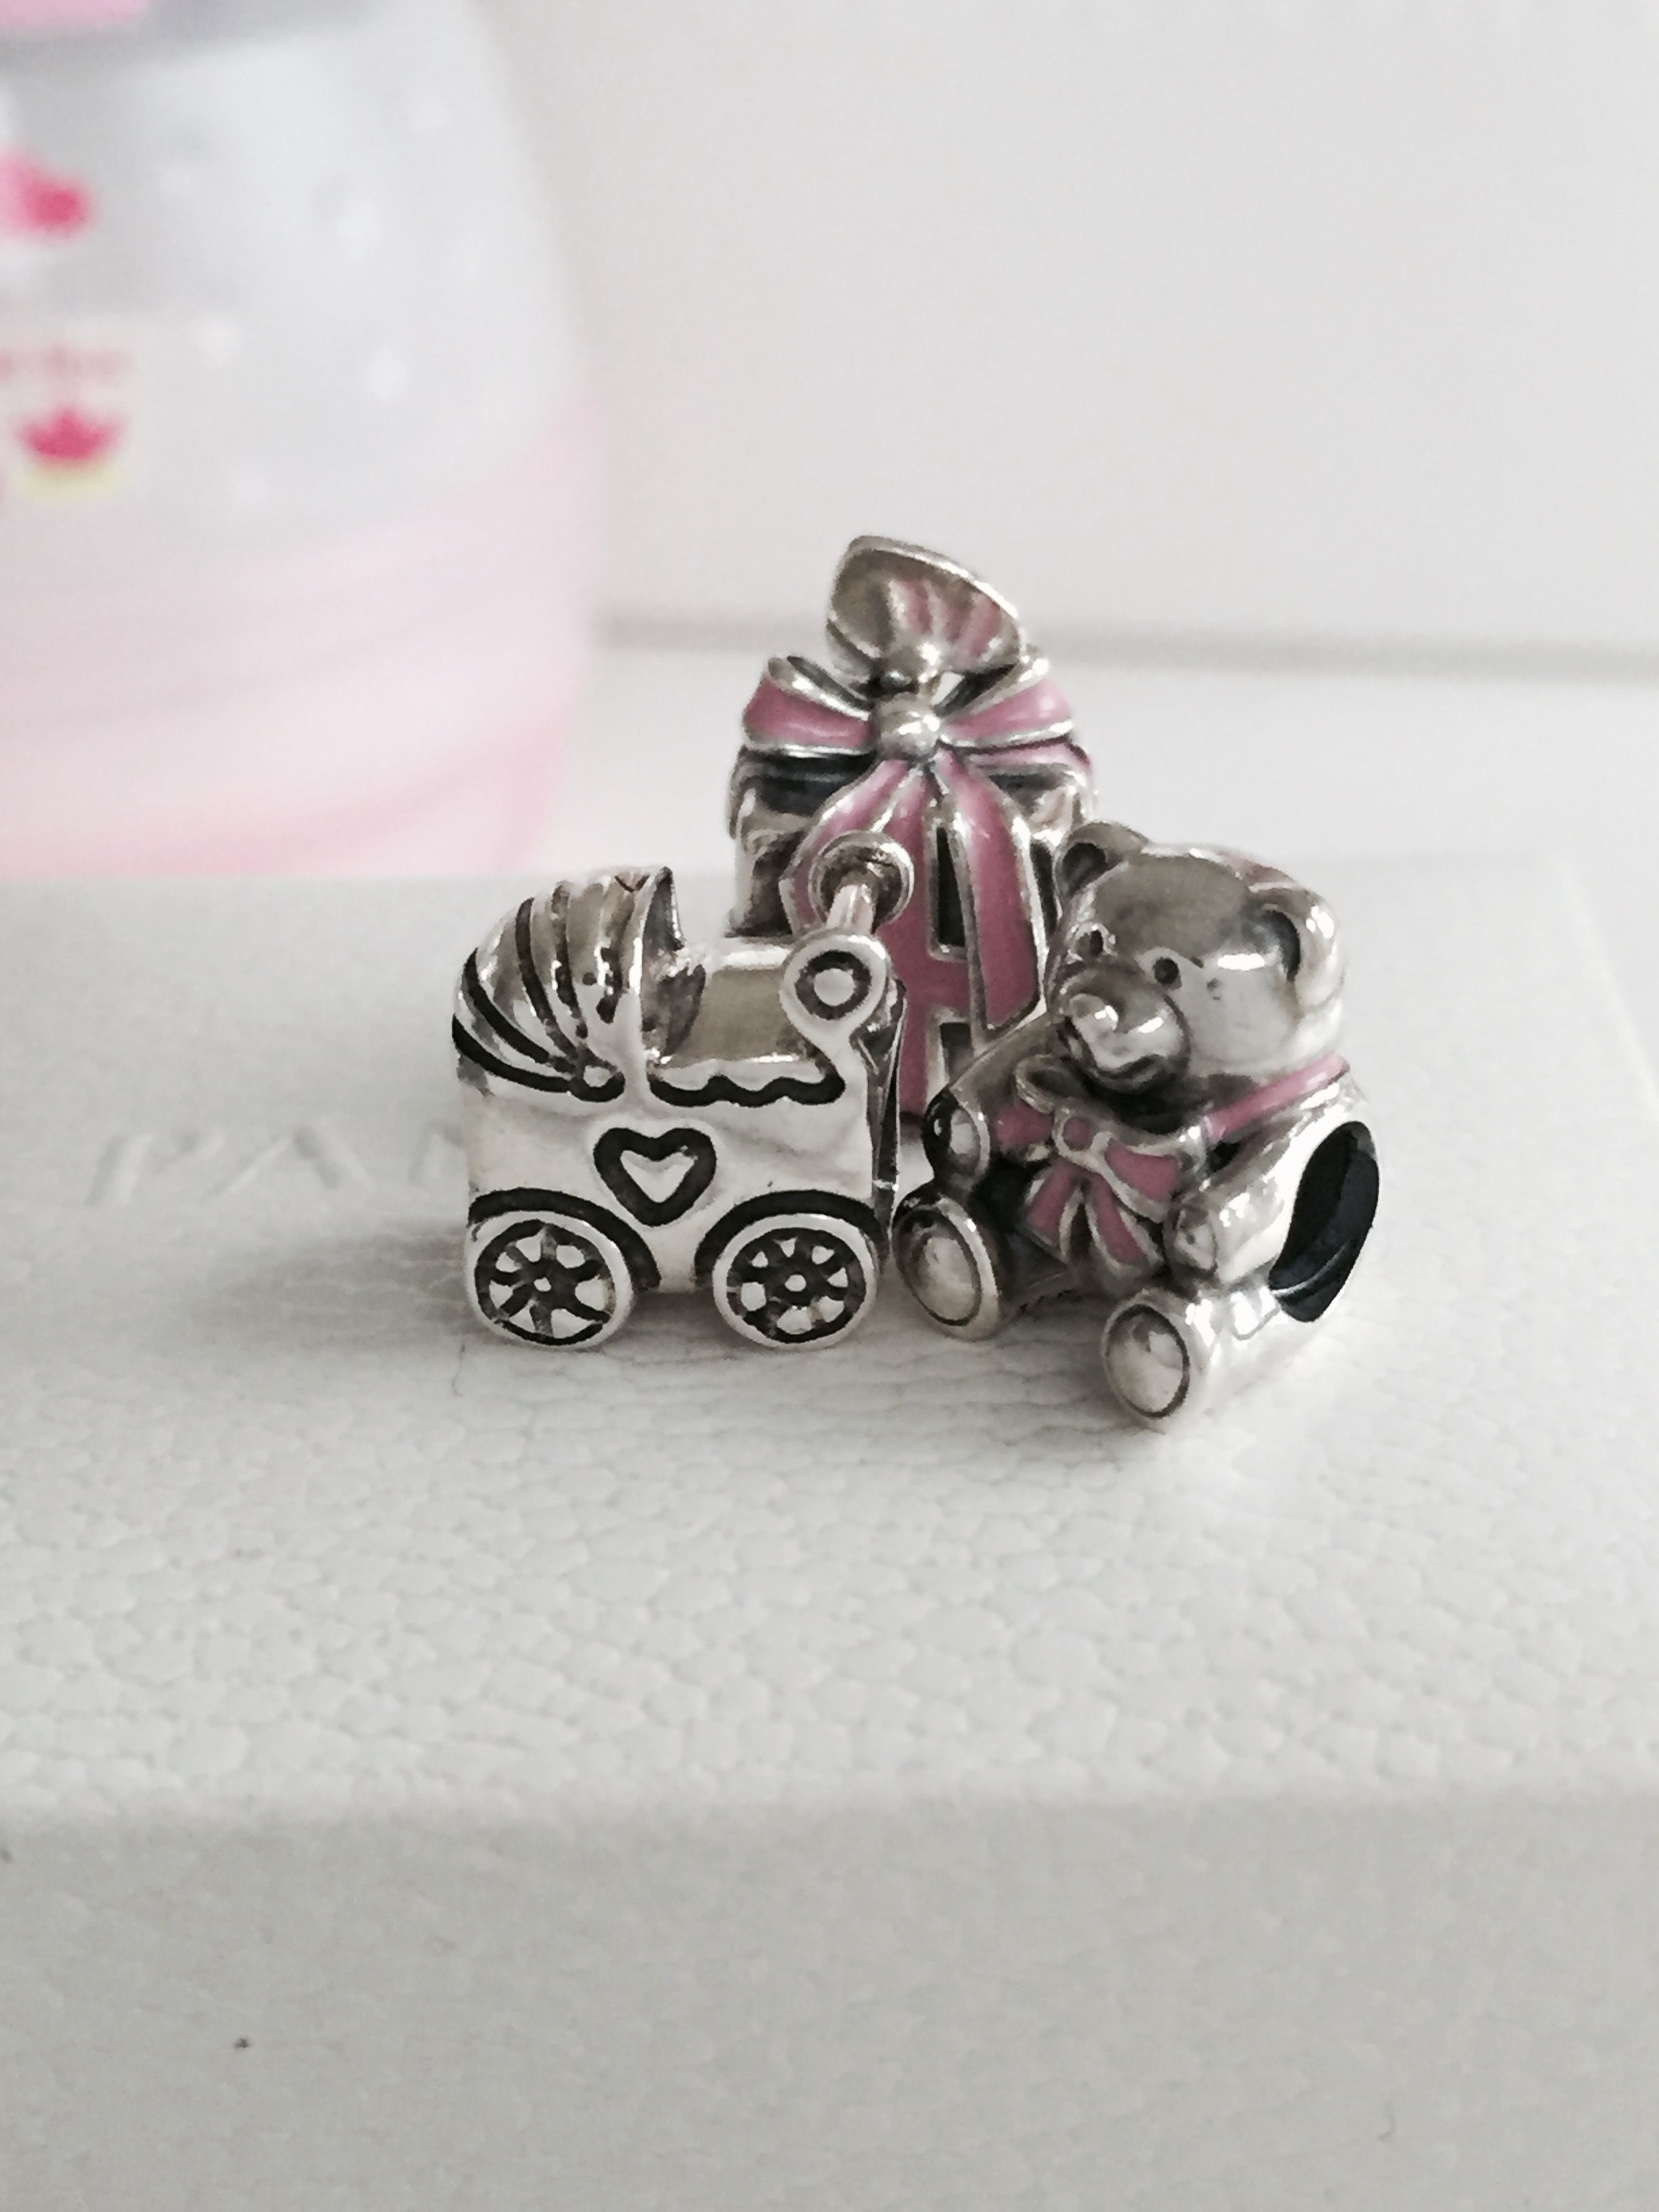 2746c3dd0 Cute charms to celebrate a newborn little baby girl and the joy of  motherhood. #PANDORA #PANDORAcharm